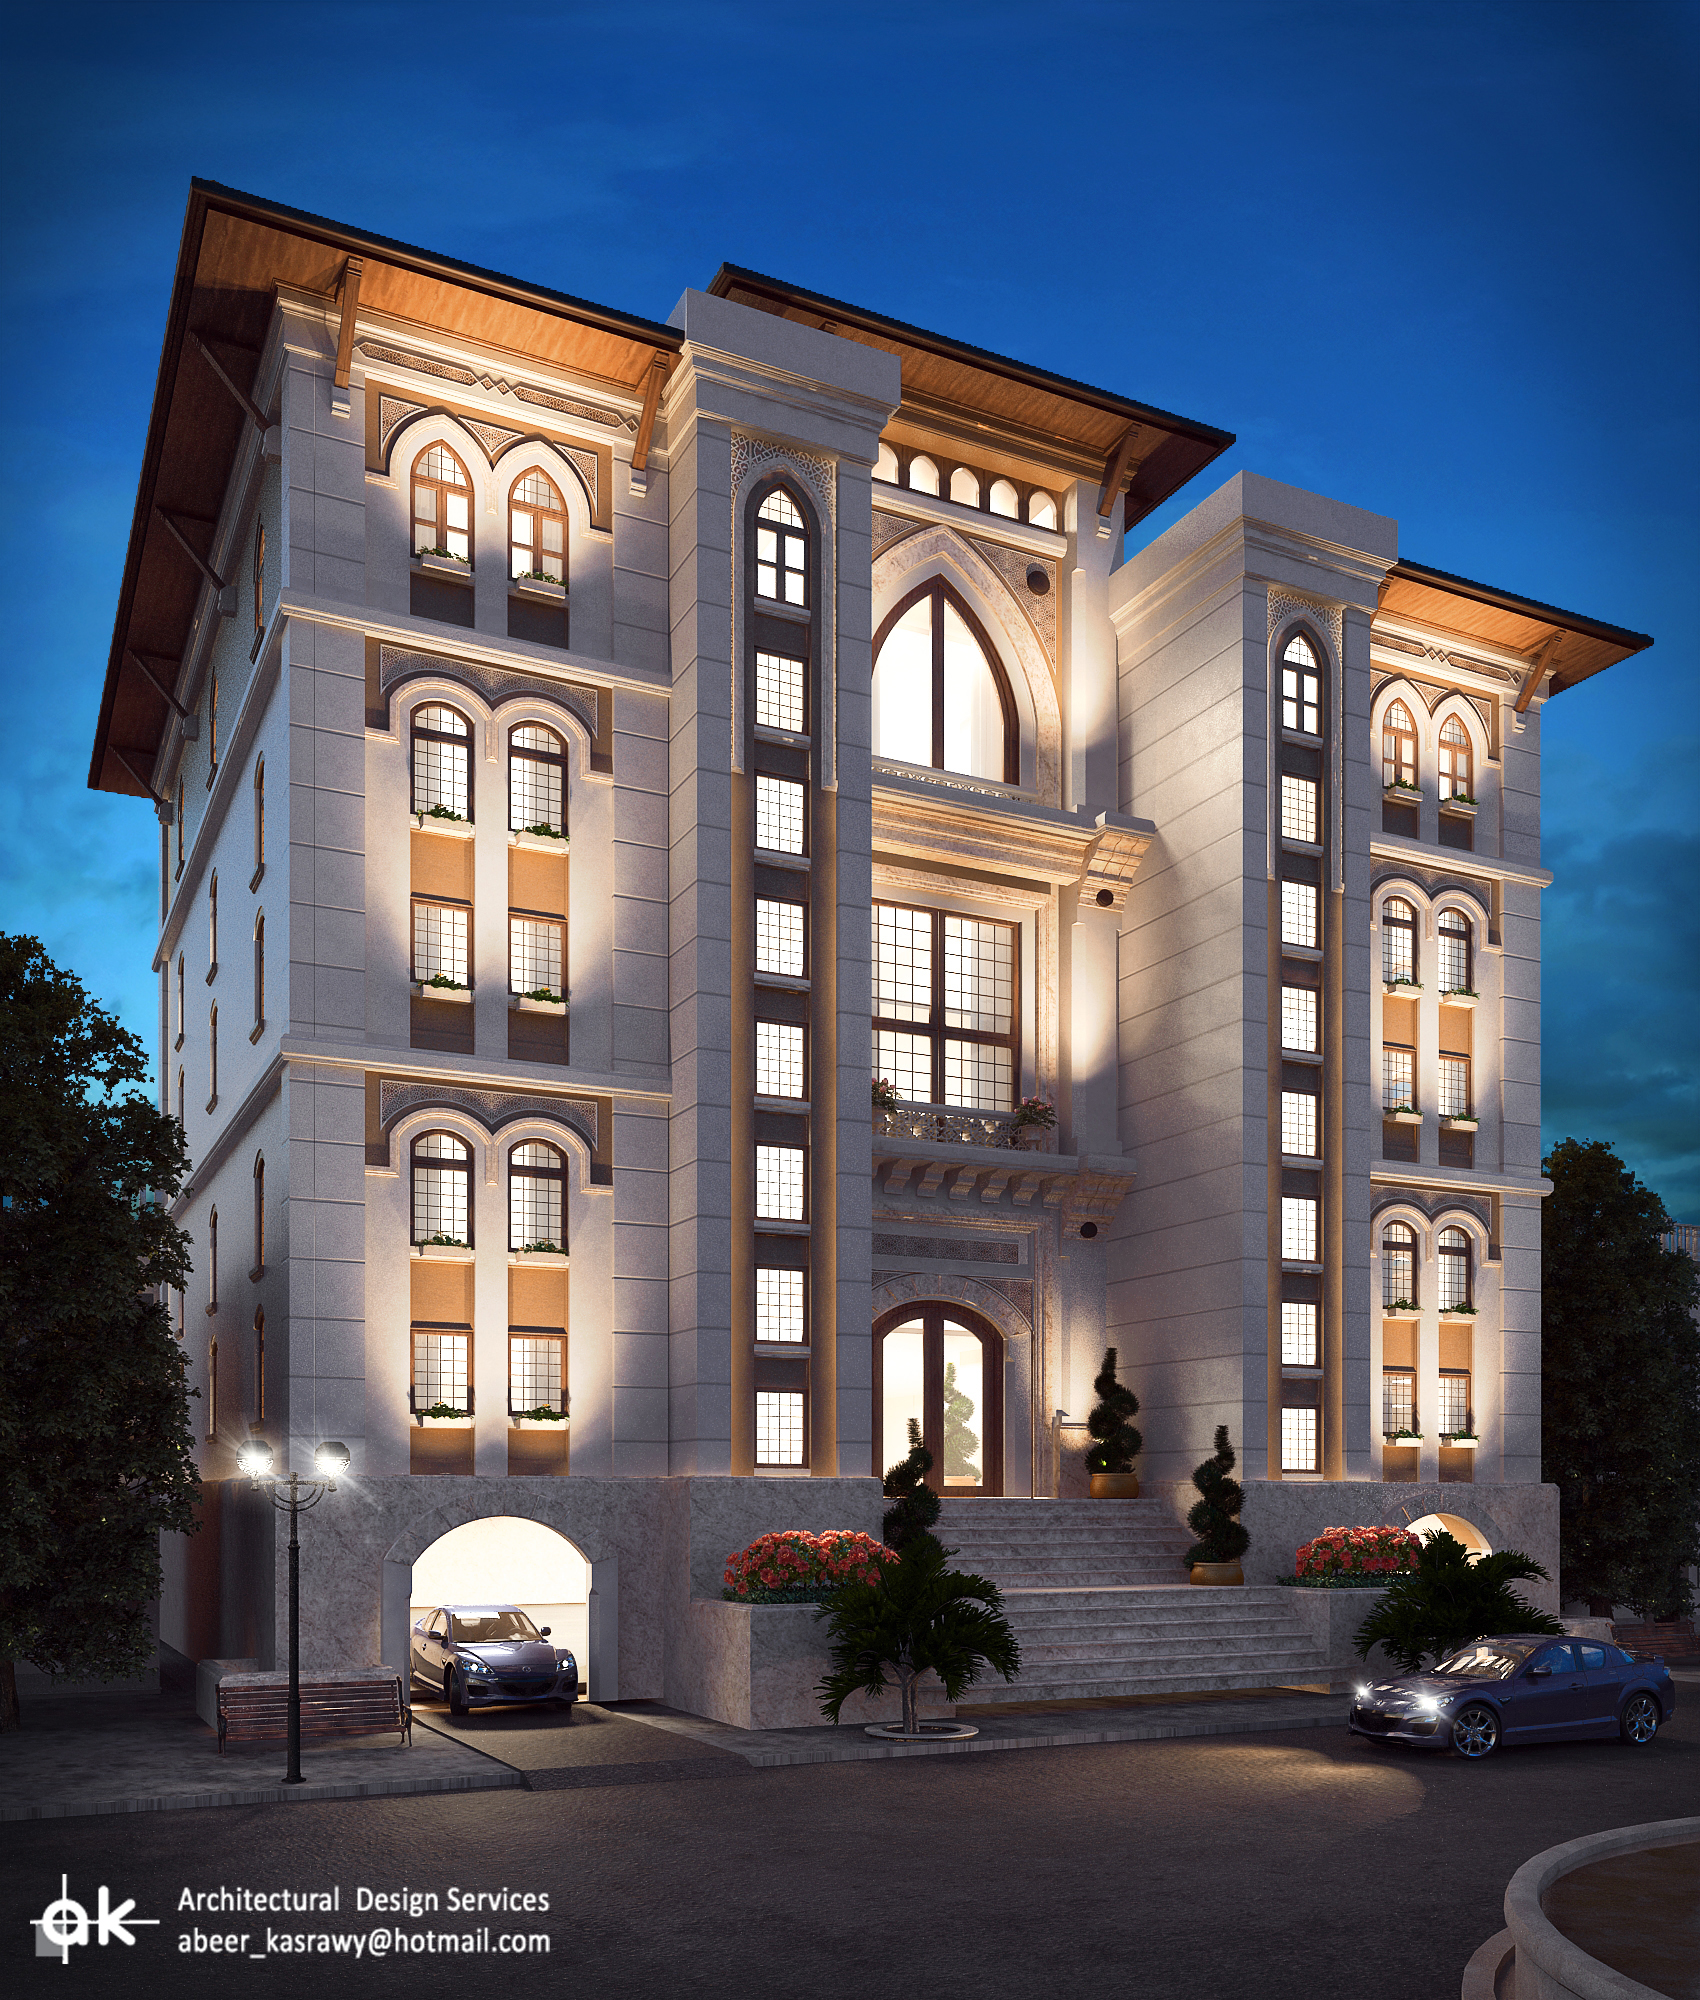 Ksa boutique hotel final night exterior by kasrawy on for Design boutique hotels deutschland